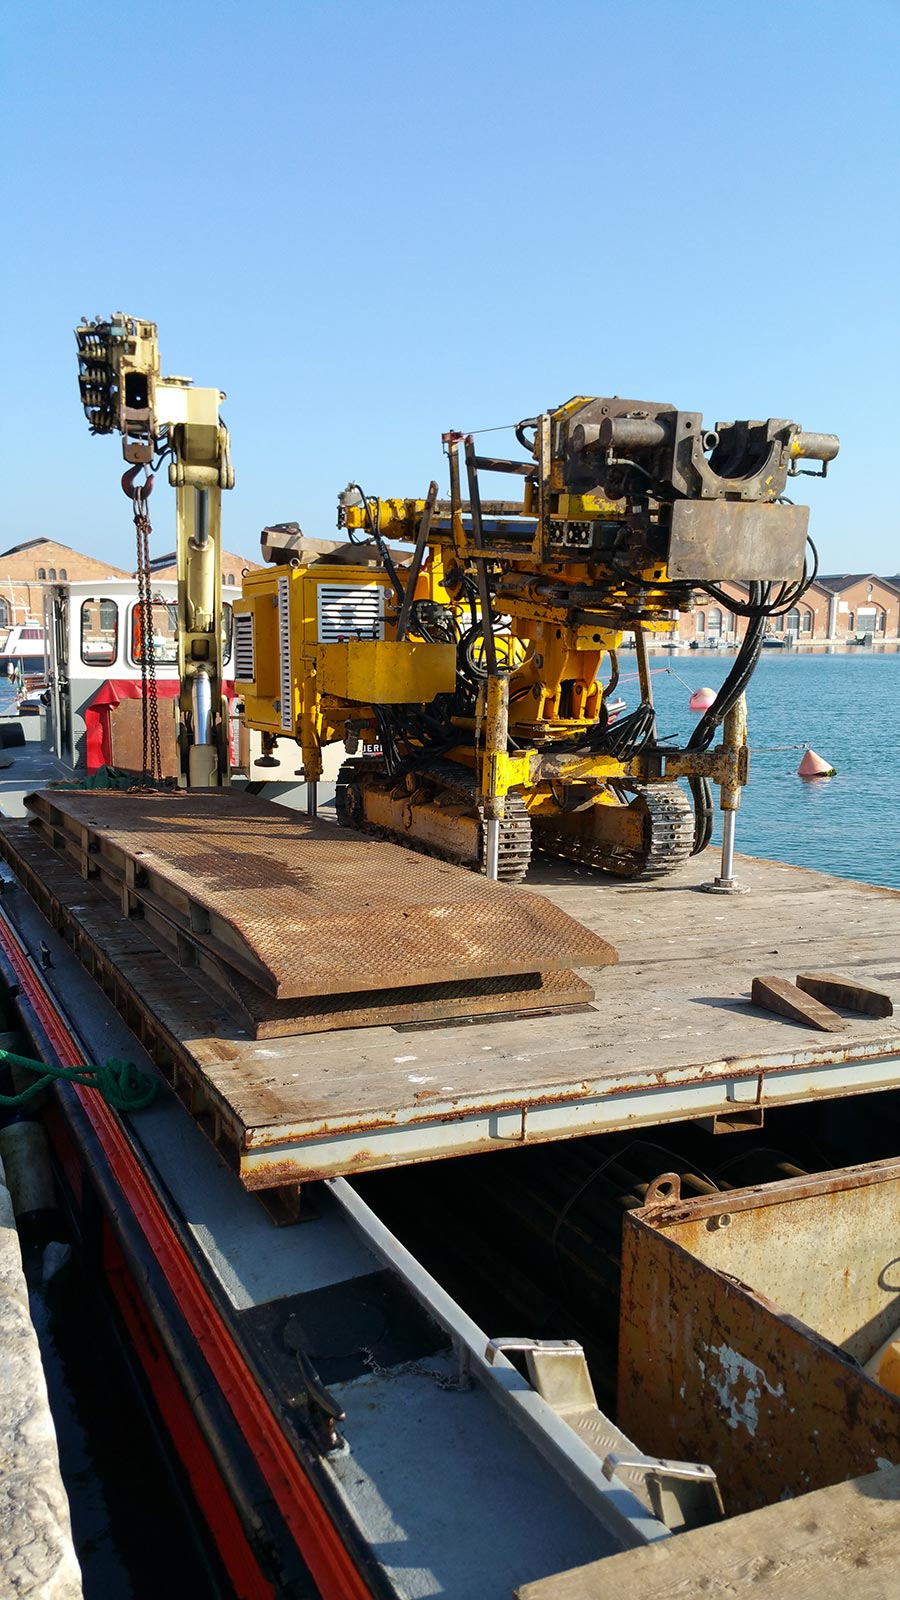 Transporting materials for the building industry around Venice